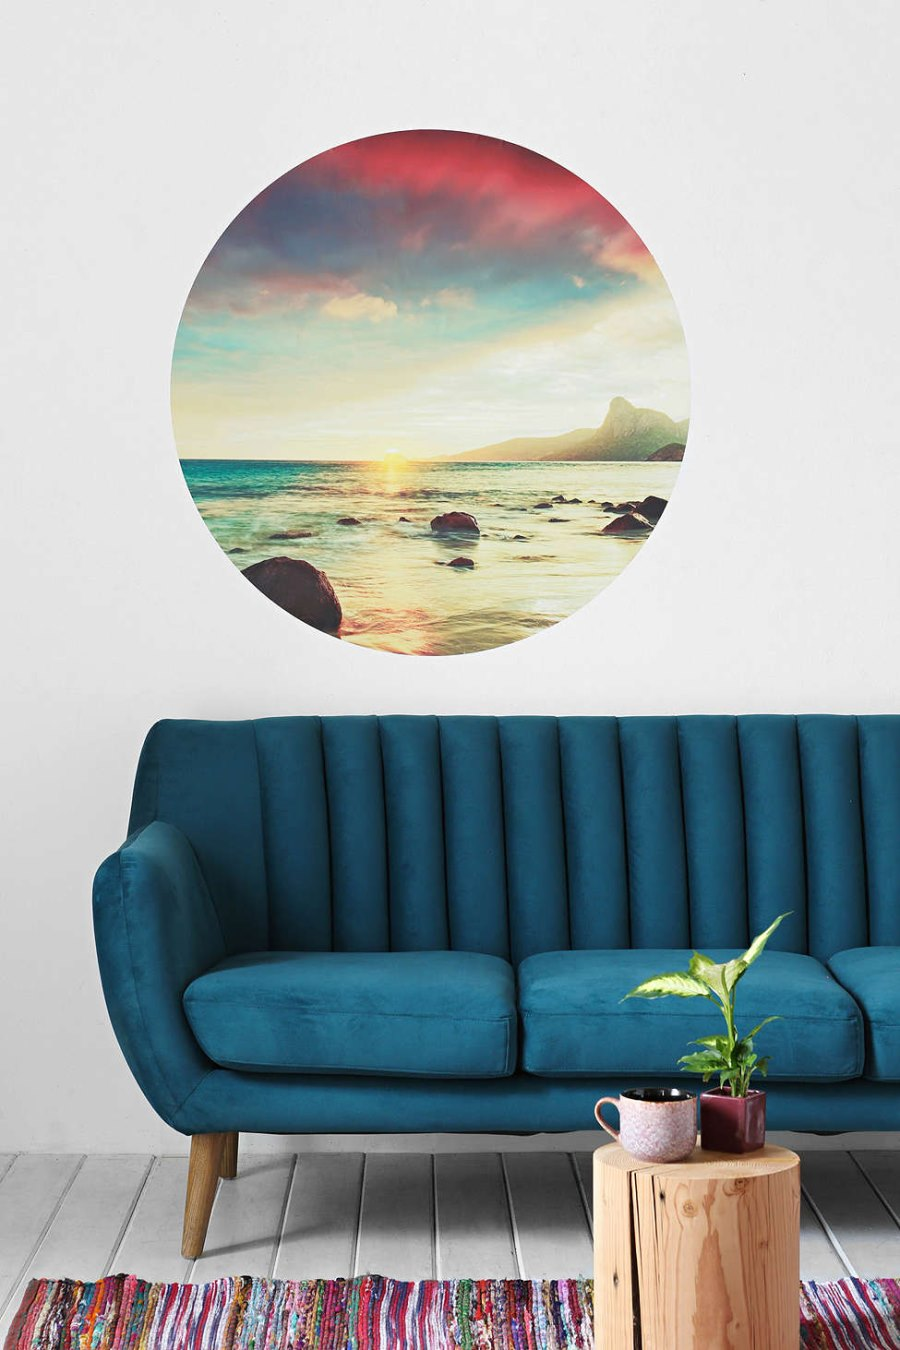 Sunset wall decal from Urban Outfitters